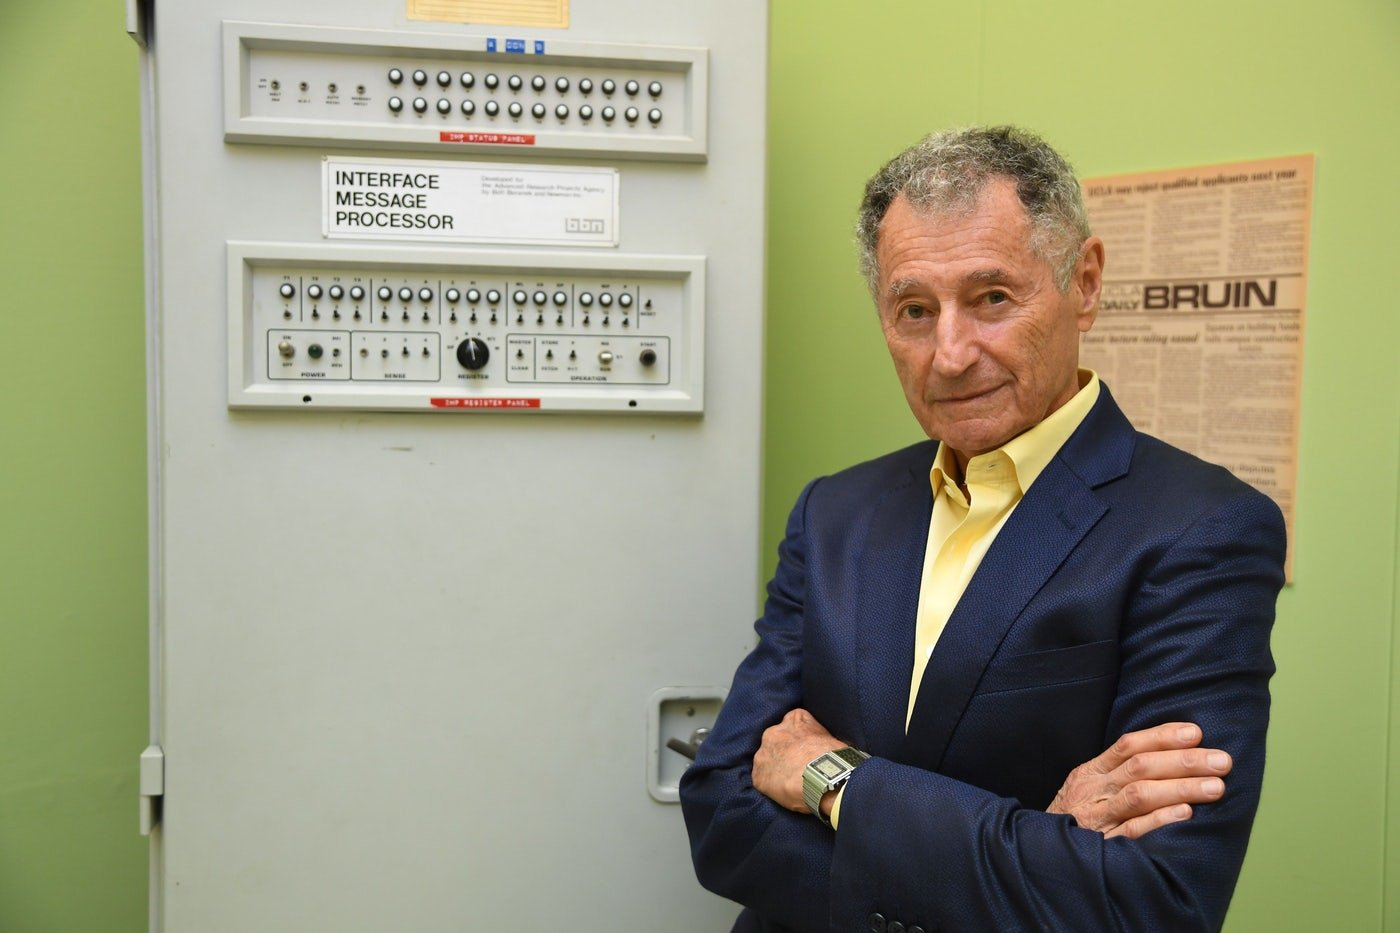 Leonard Kleinrock, participant in the true birth of the Internet in 1969, along with the computer that started it all.